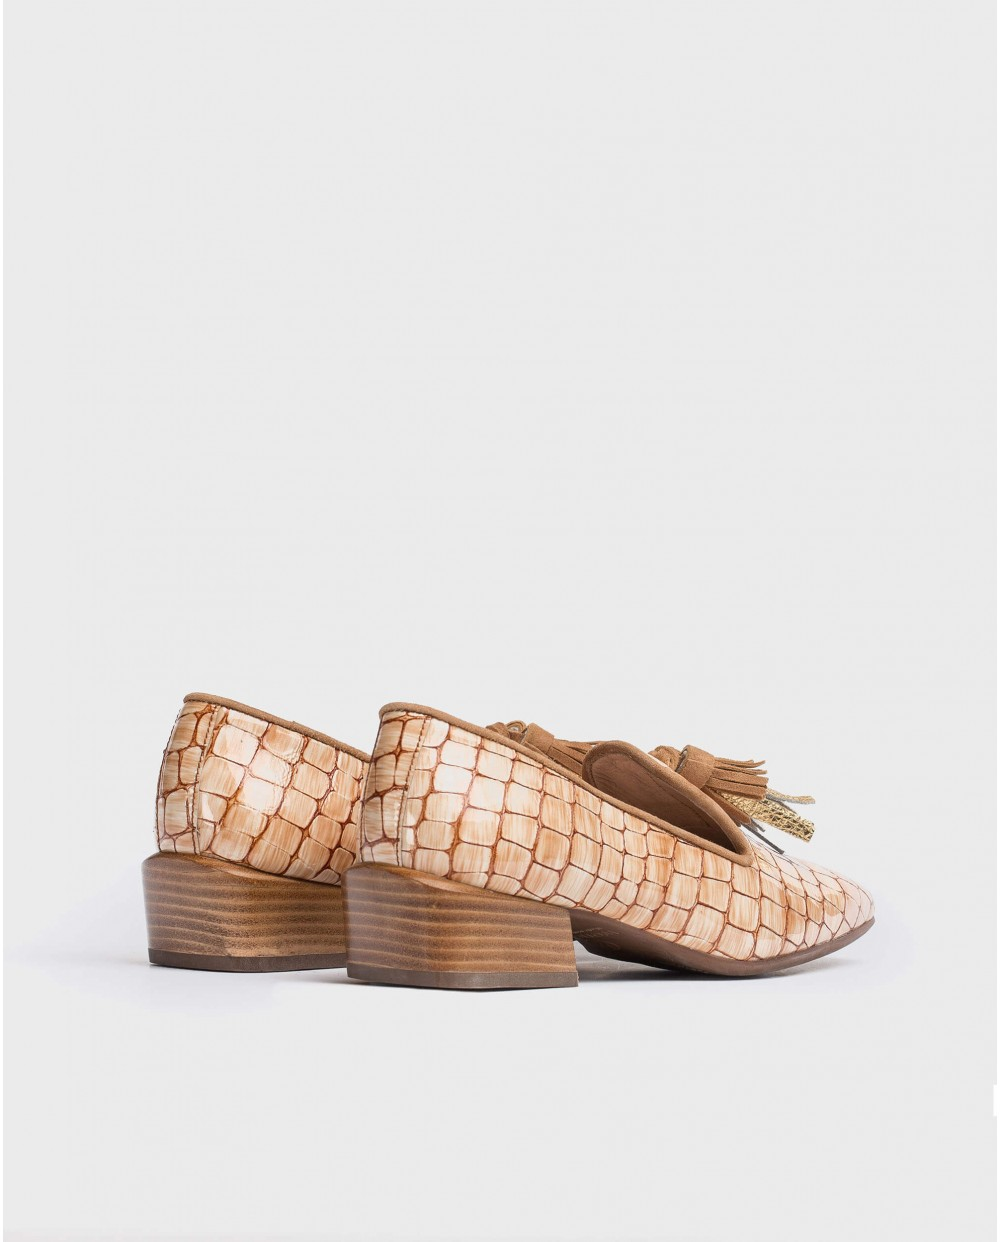 Wonders-Women-Moccasin with leather tassels